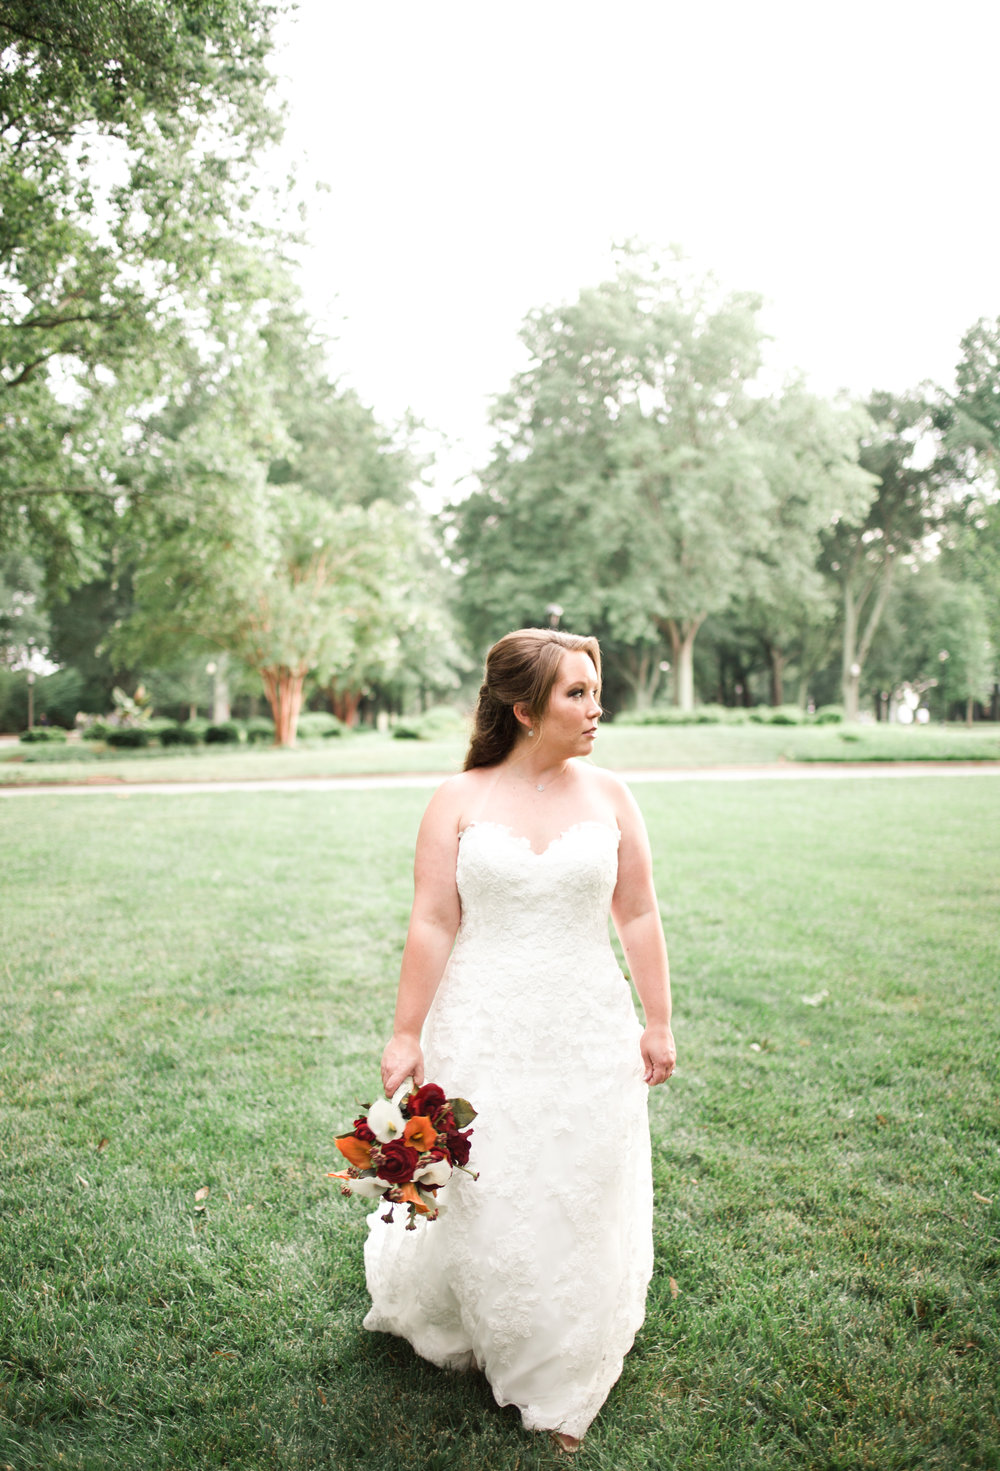 gabbie_bridal_poured_out_photography-28.jpg